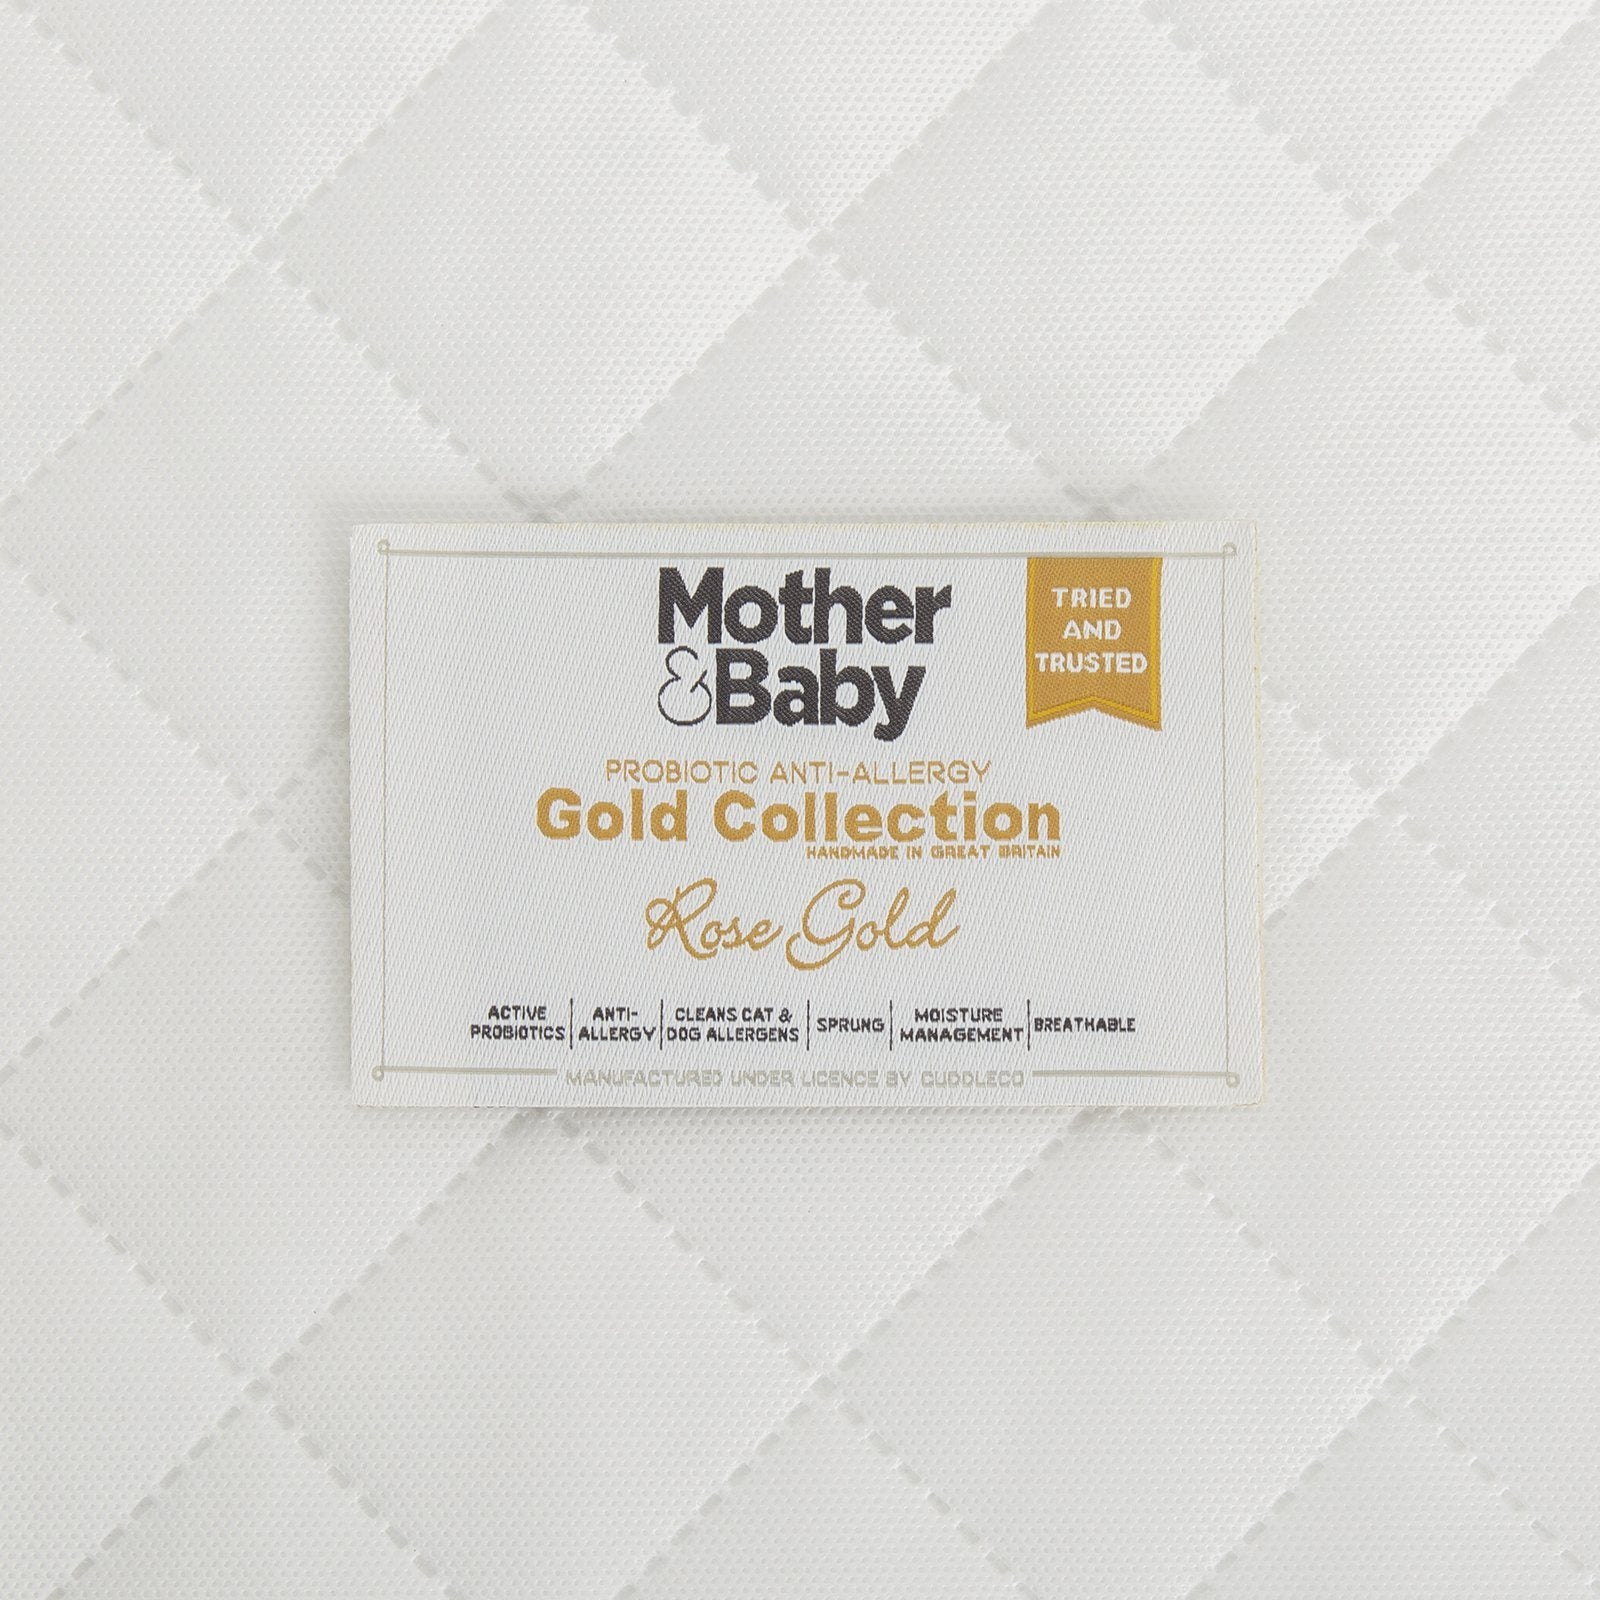 Mother&Baby Rose Gold Anti-Allergy Sprung Cot bed Mattress 140 x 70cm Mother & Baby